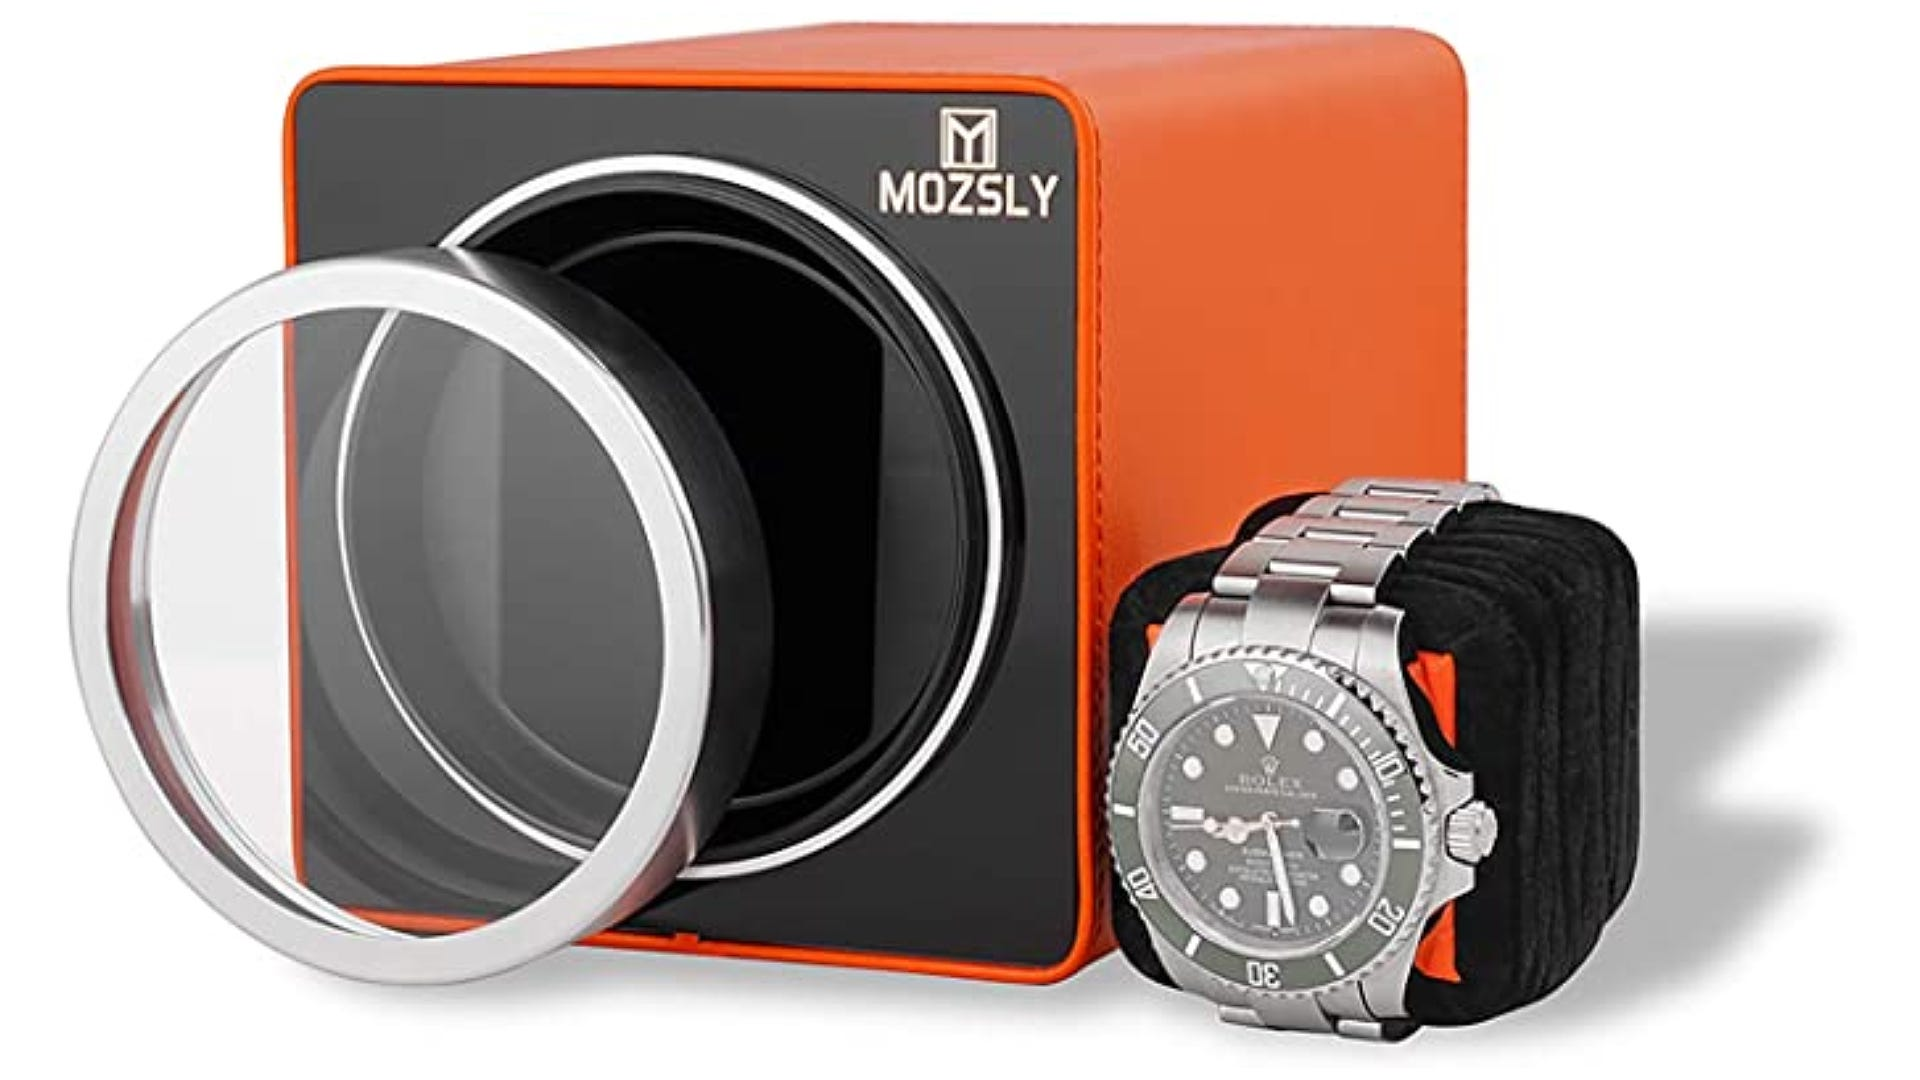 An orange and black watch winder box with glass front removed and pillow displayed.